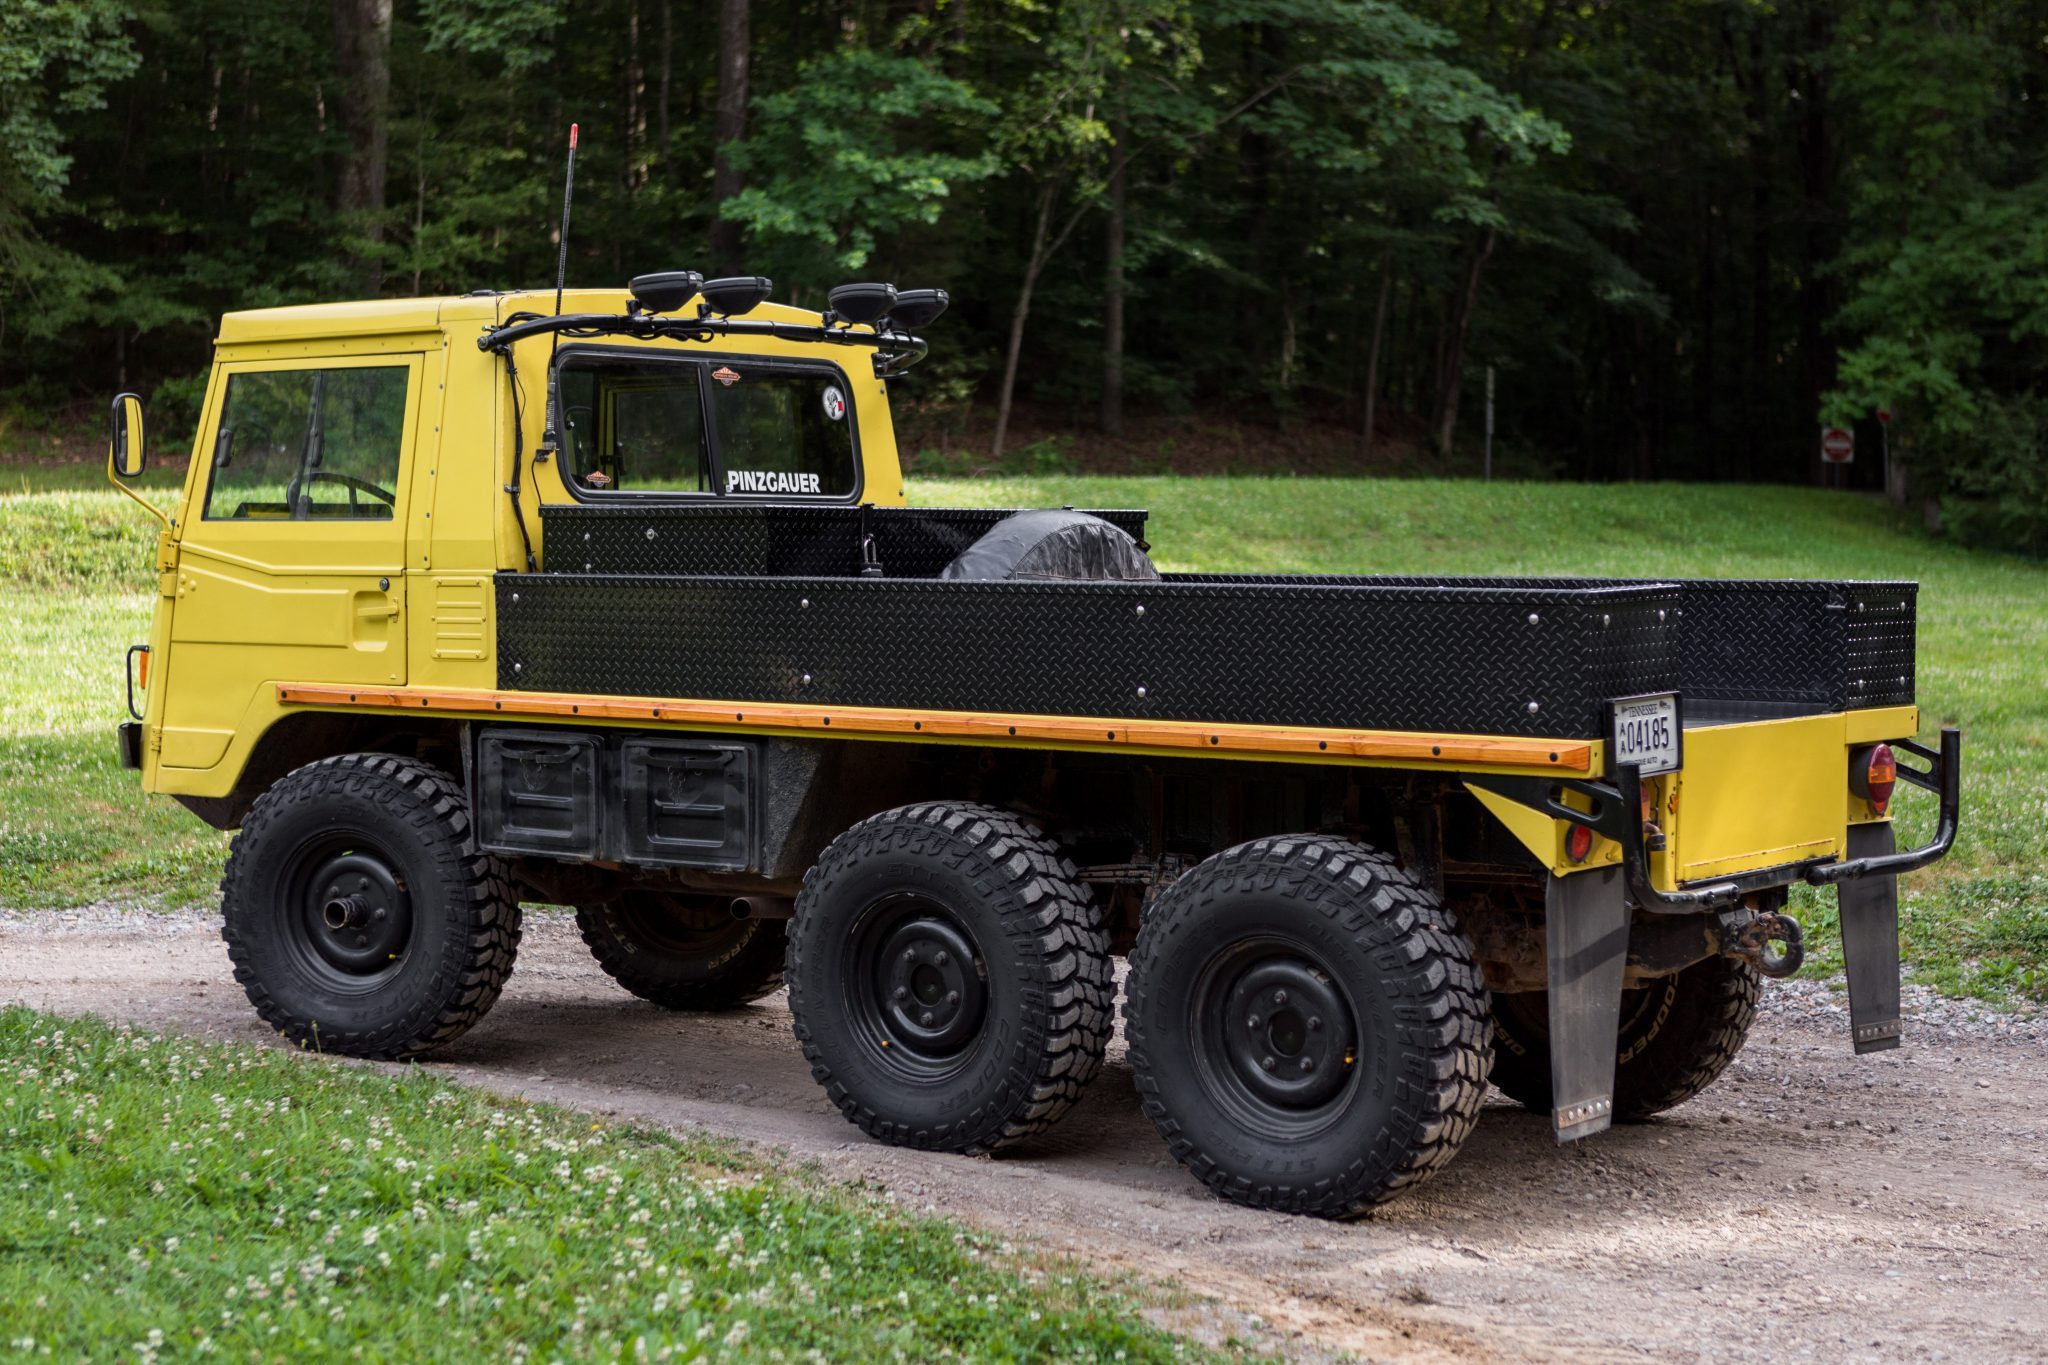 Preview Trucks: Marco717